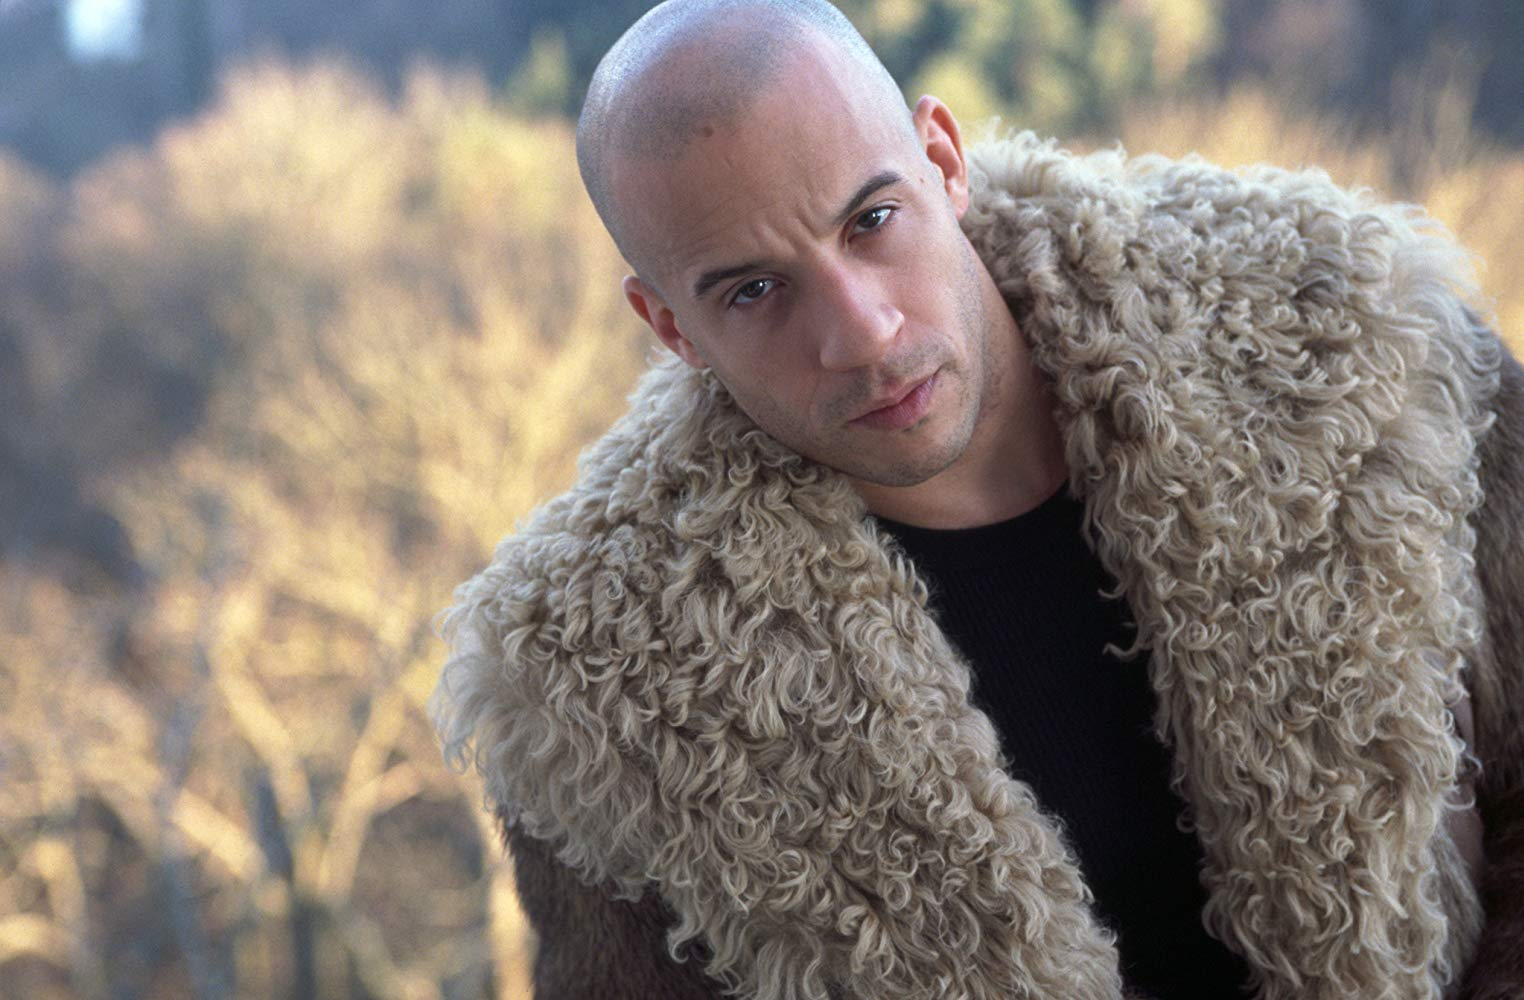 Vin Diesel as Xander Cage in xXx (2002)